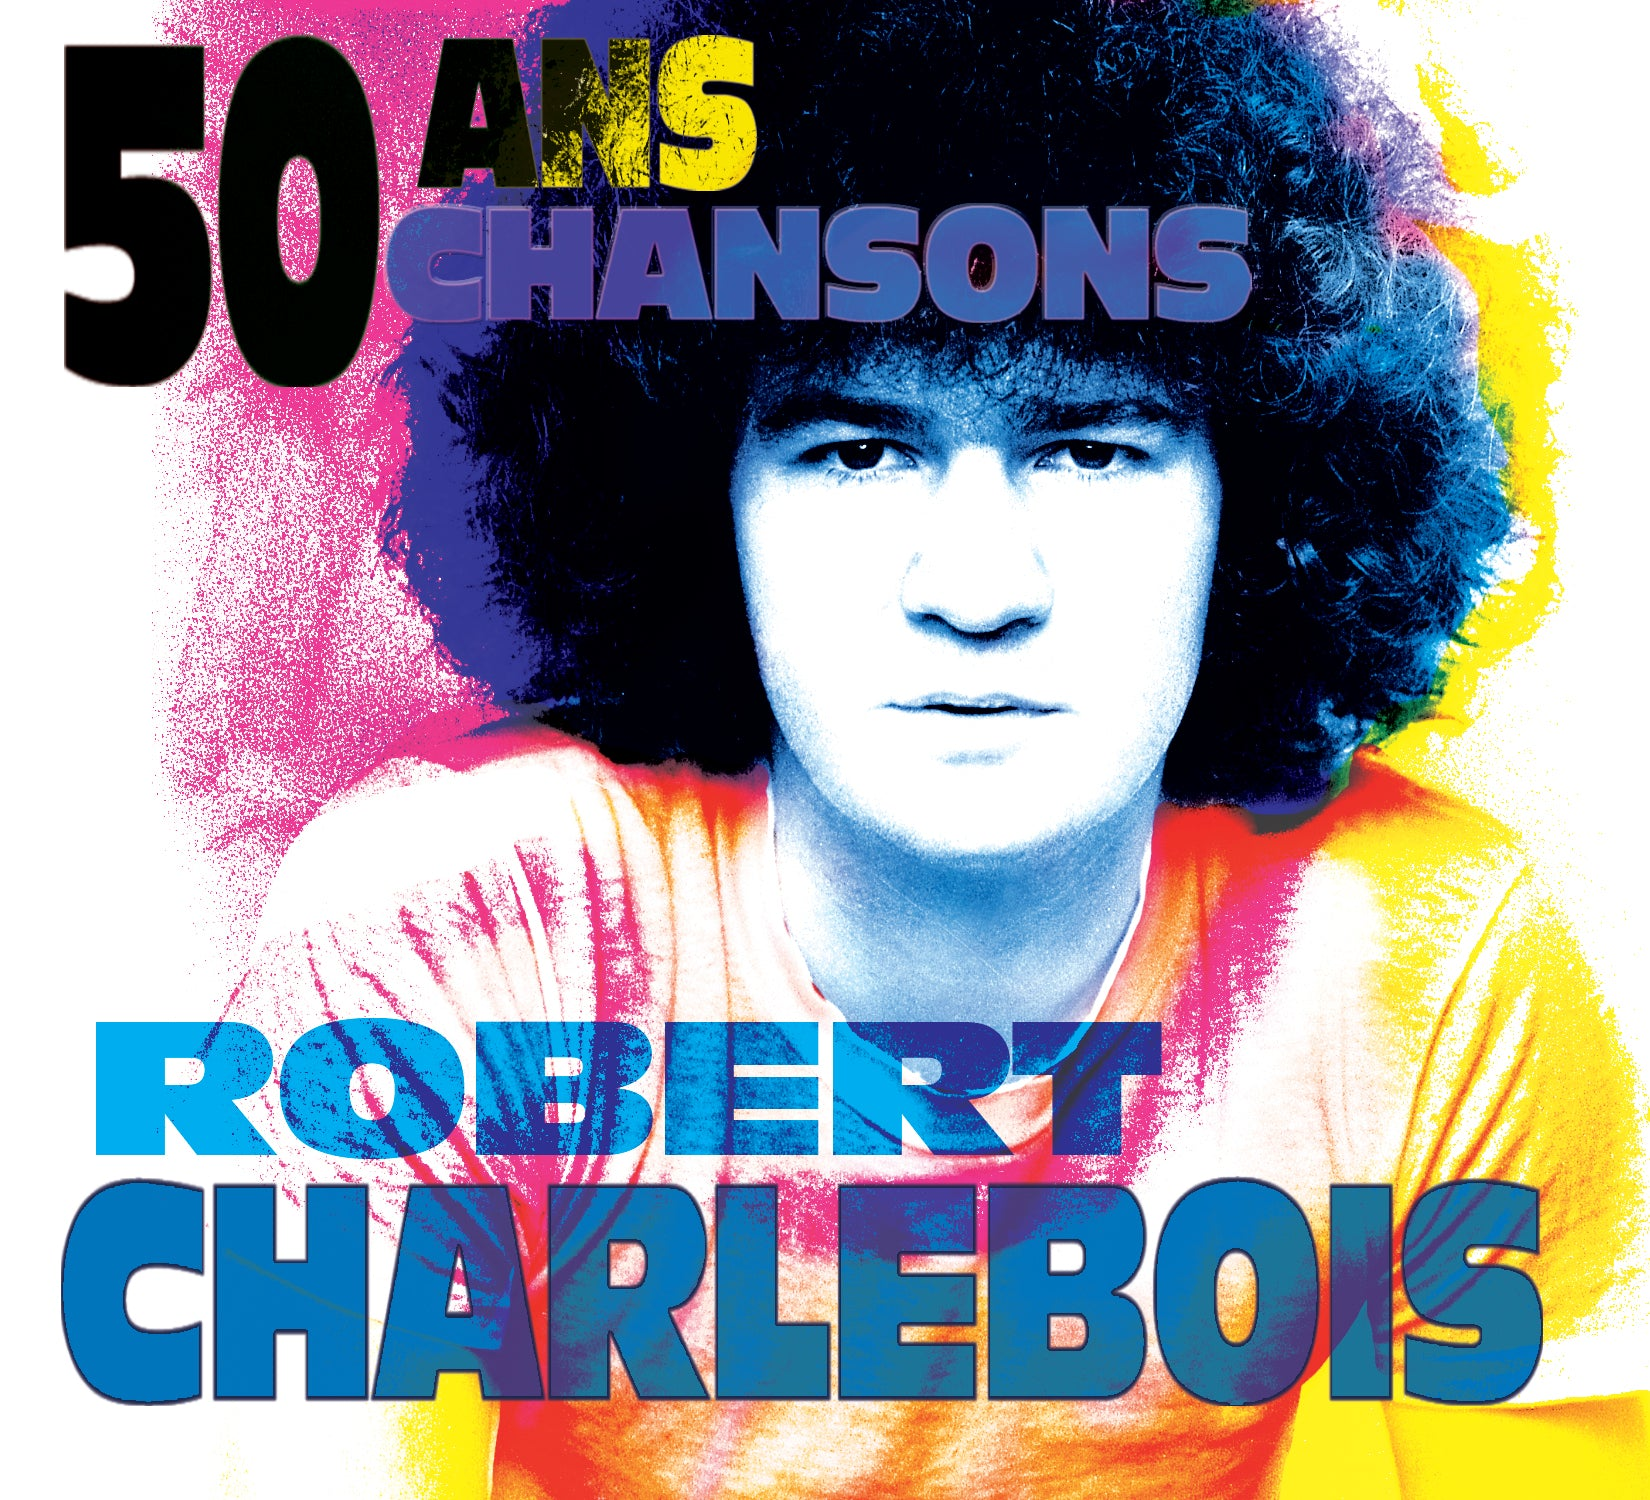 CD - Robert Charlebois - 50 ans 50 Chansons - TRICD7343